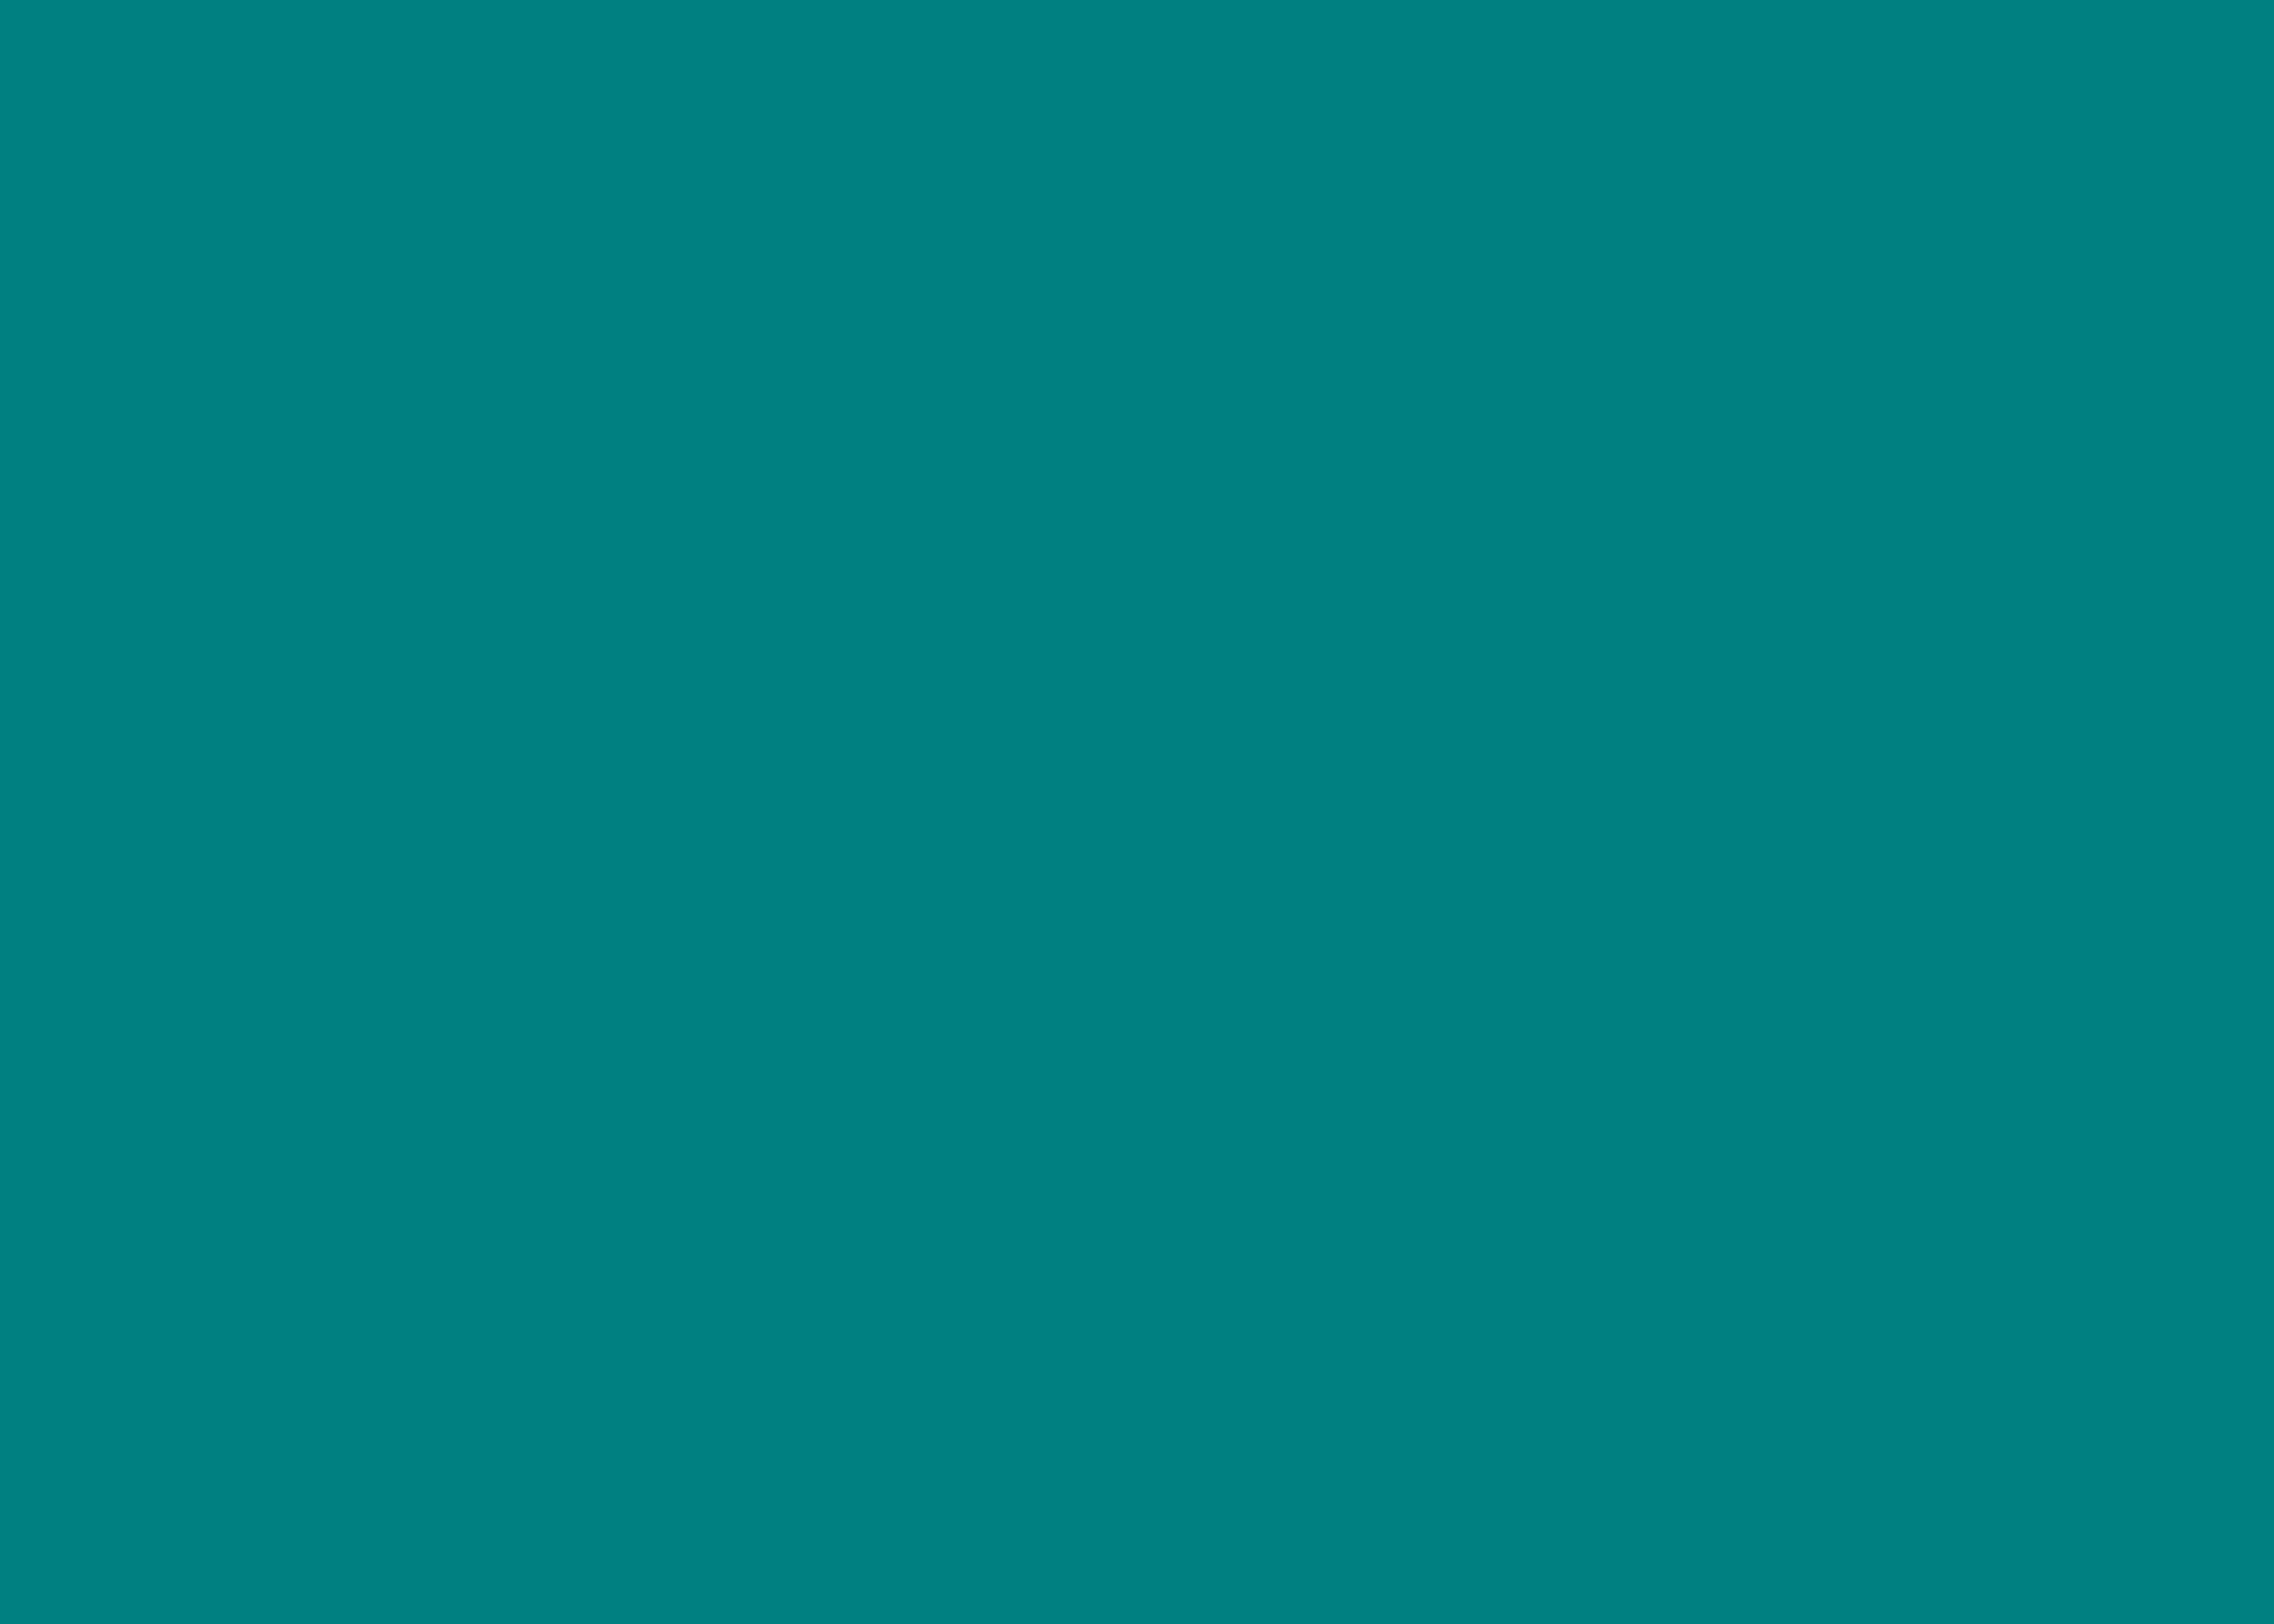 #Teal is a low-saturated color, a bluish-green to dark ...